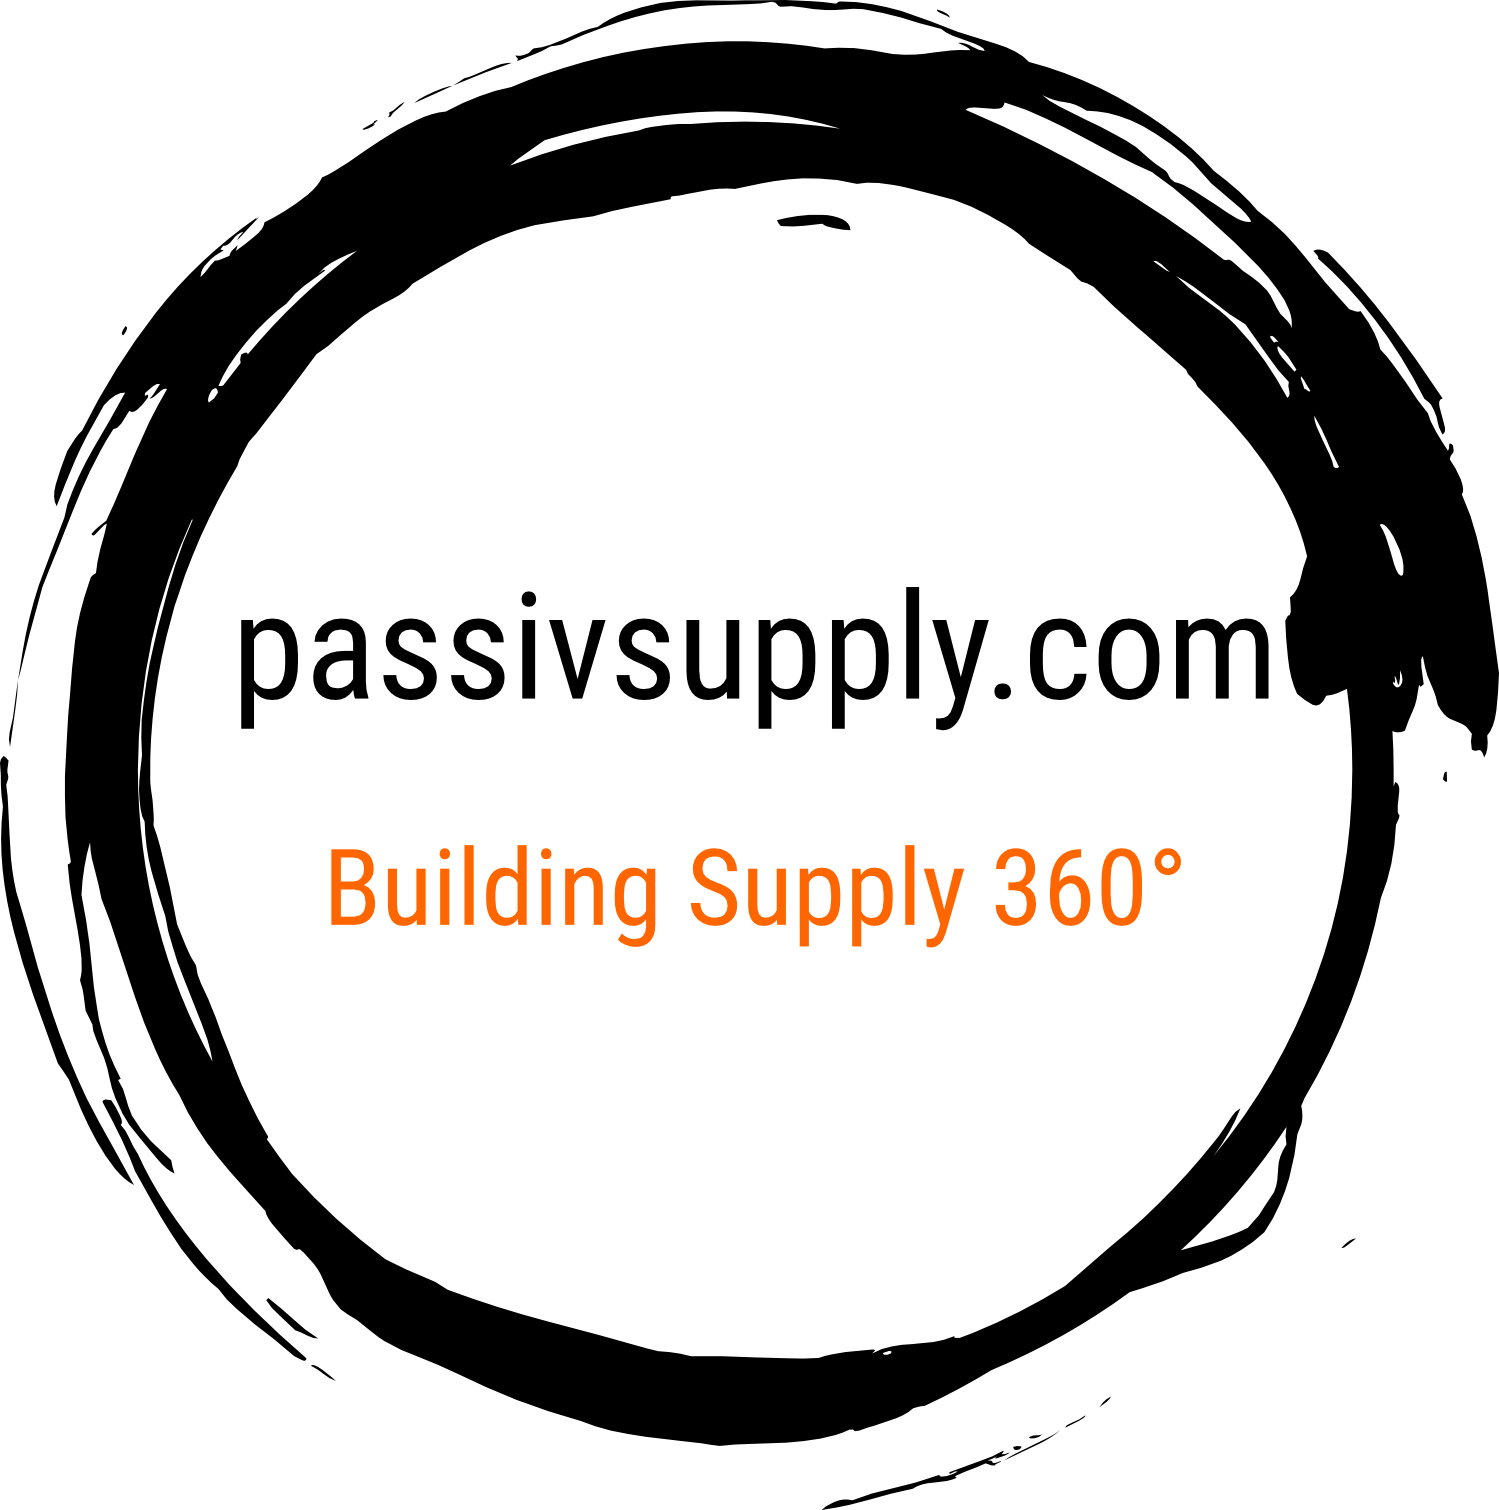 passivsupply.com leading supplier of windows and doors in New York